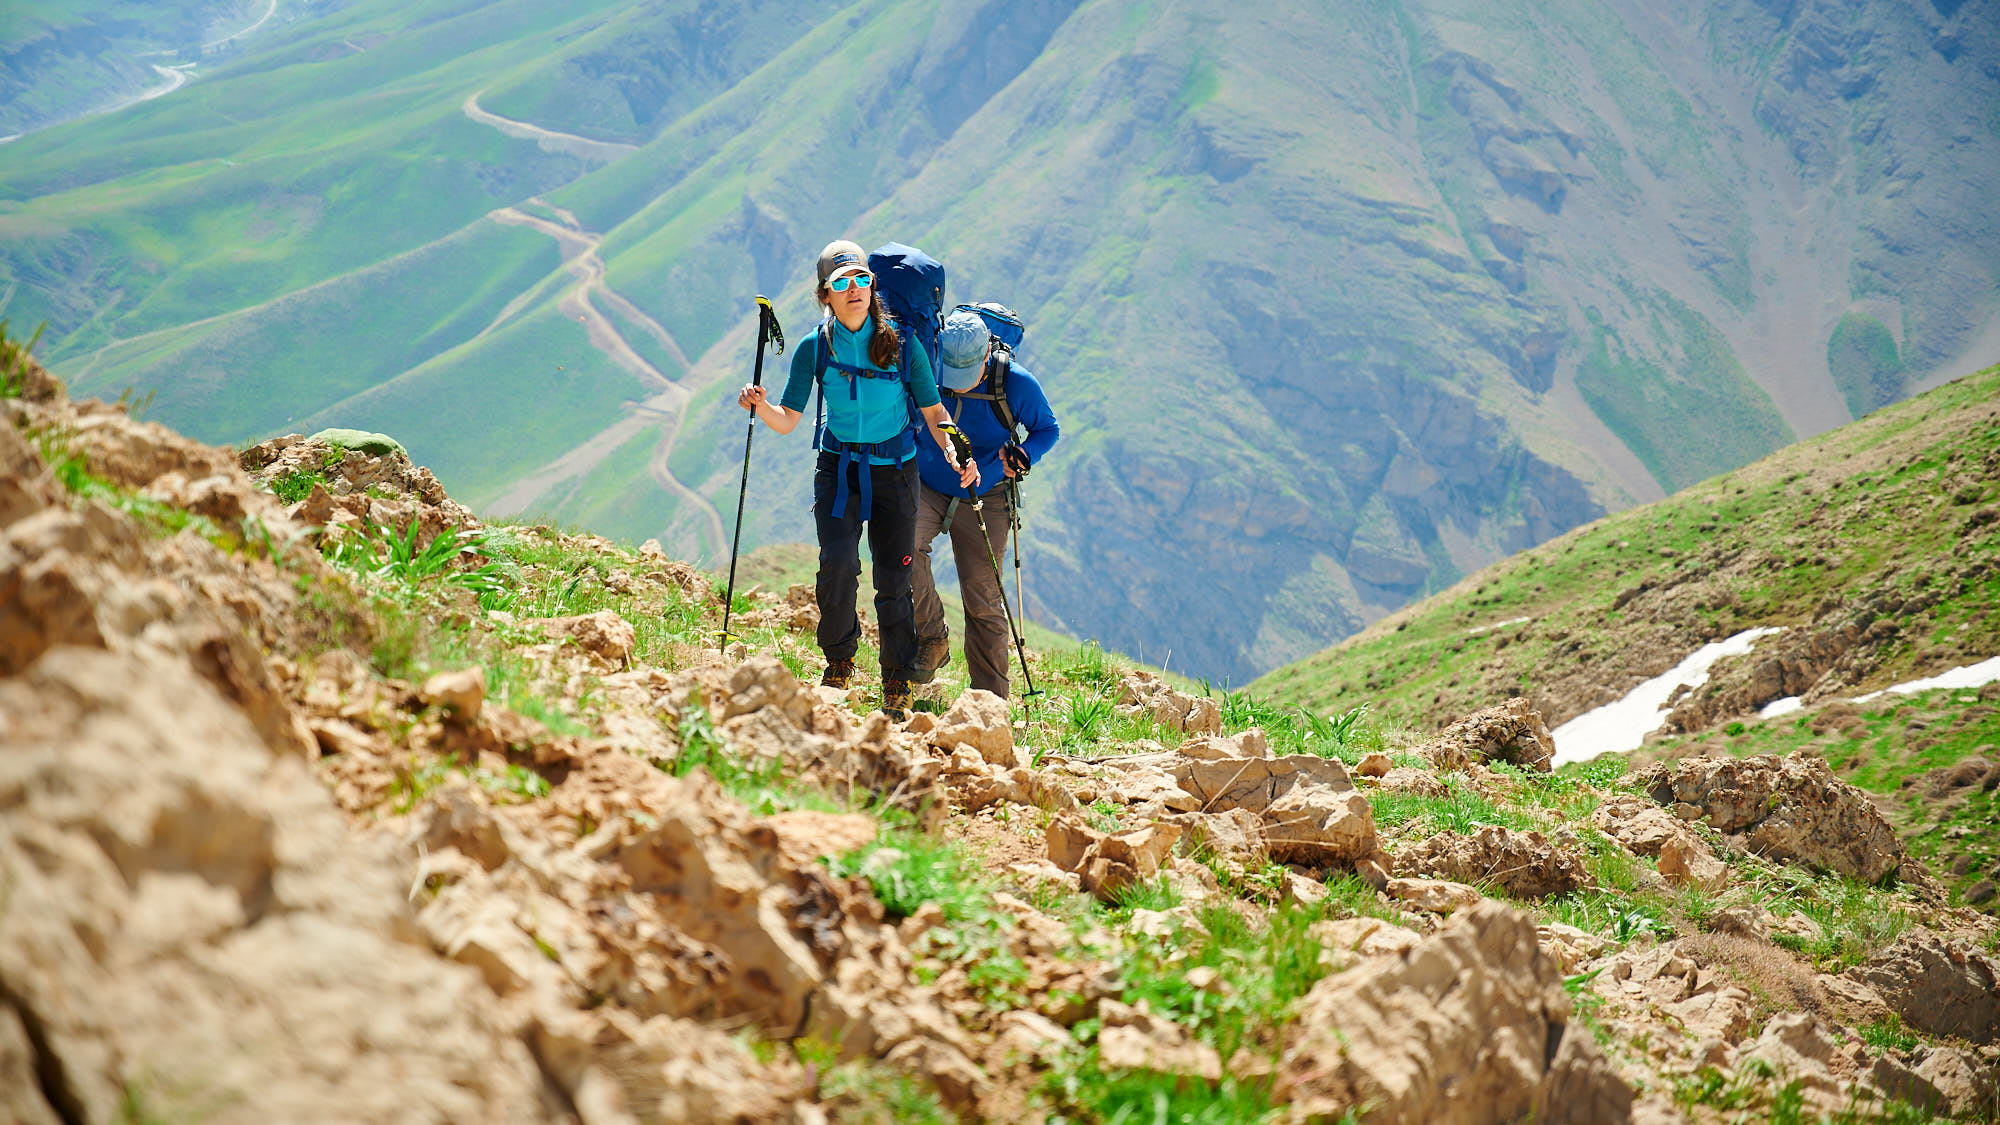 Hikers near Poulor and Mount Damavand in Iran